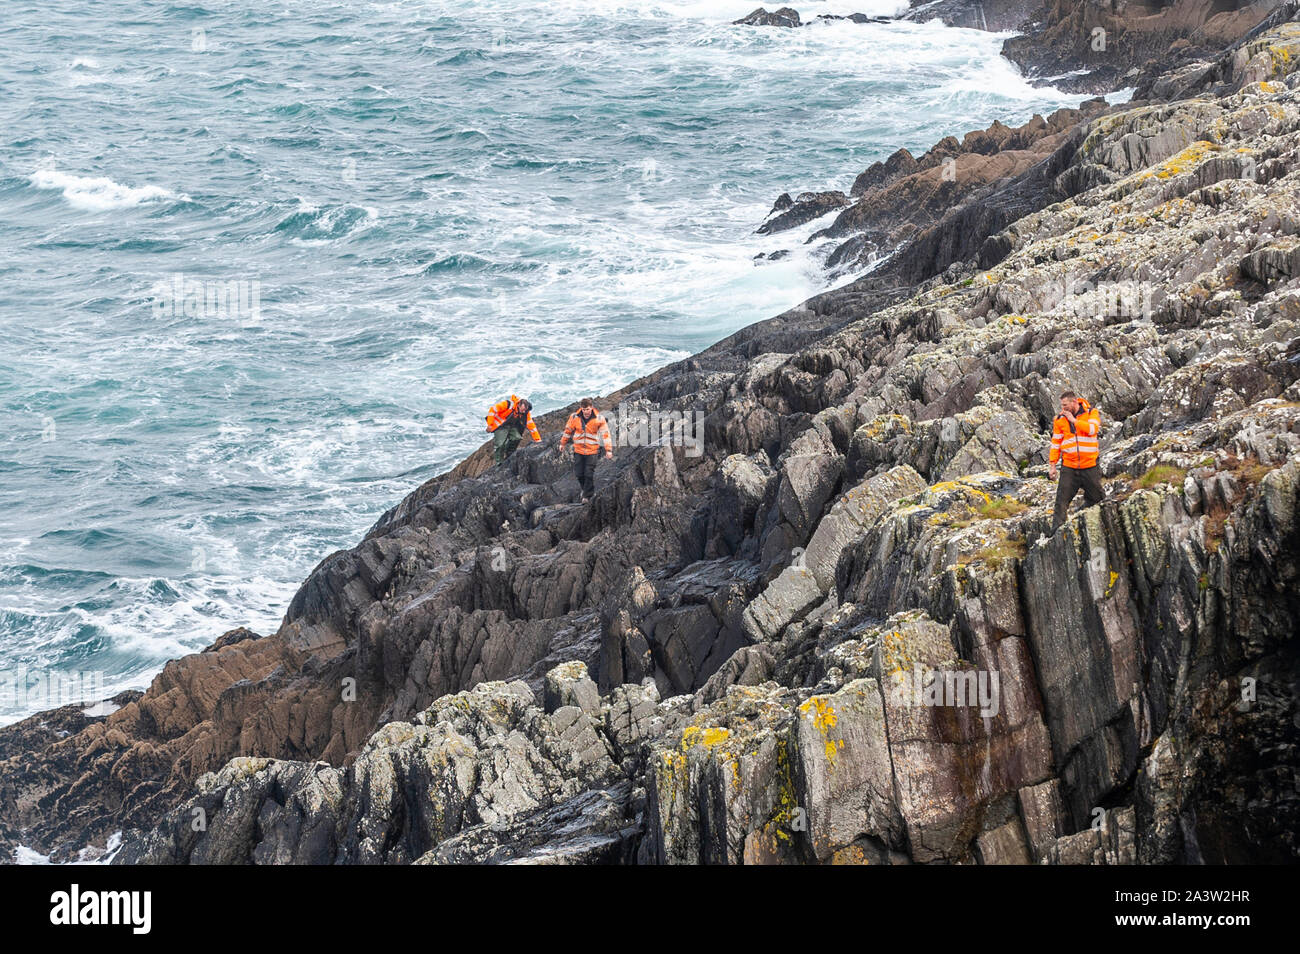 dunmanus-bay-west-cork-ireland-10th-oct-2019-people-search-the-waters-of-dunmanus-bay-for-missing-fisherman-kodie-healy-mr-healy-went-fishing-yesterday-morning-but-didnt-return-this-morning-boat-wreckage-and-flares-have-been-found-on-carberry-island-which-is-located-in-the-bay-credit-andy-gibsonalamy-live-news-2A3W2HR.jpg